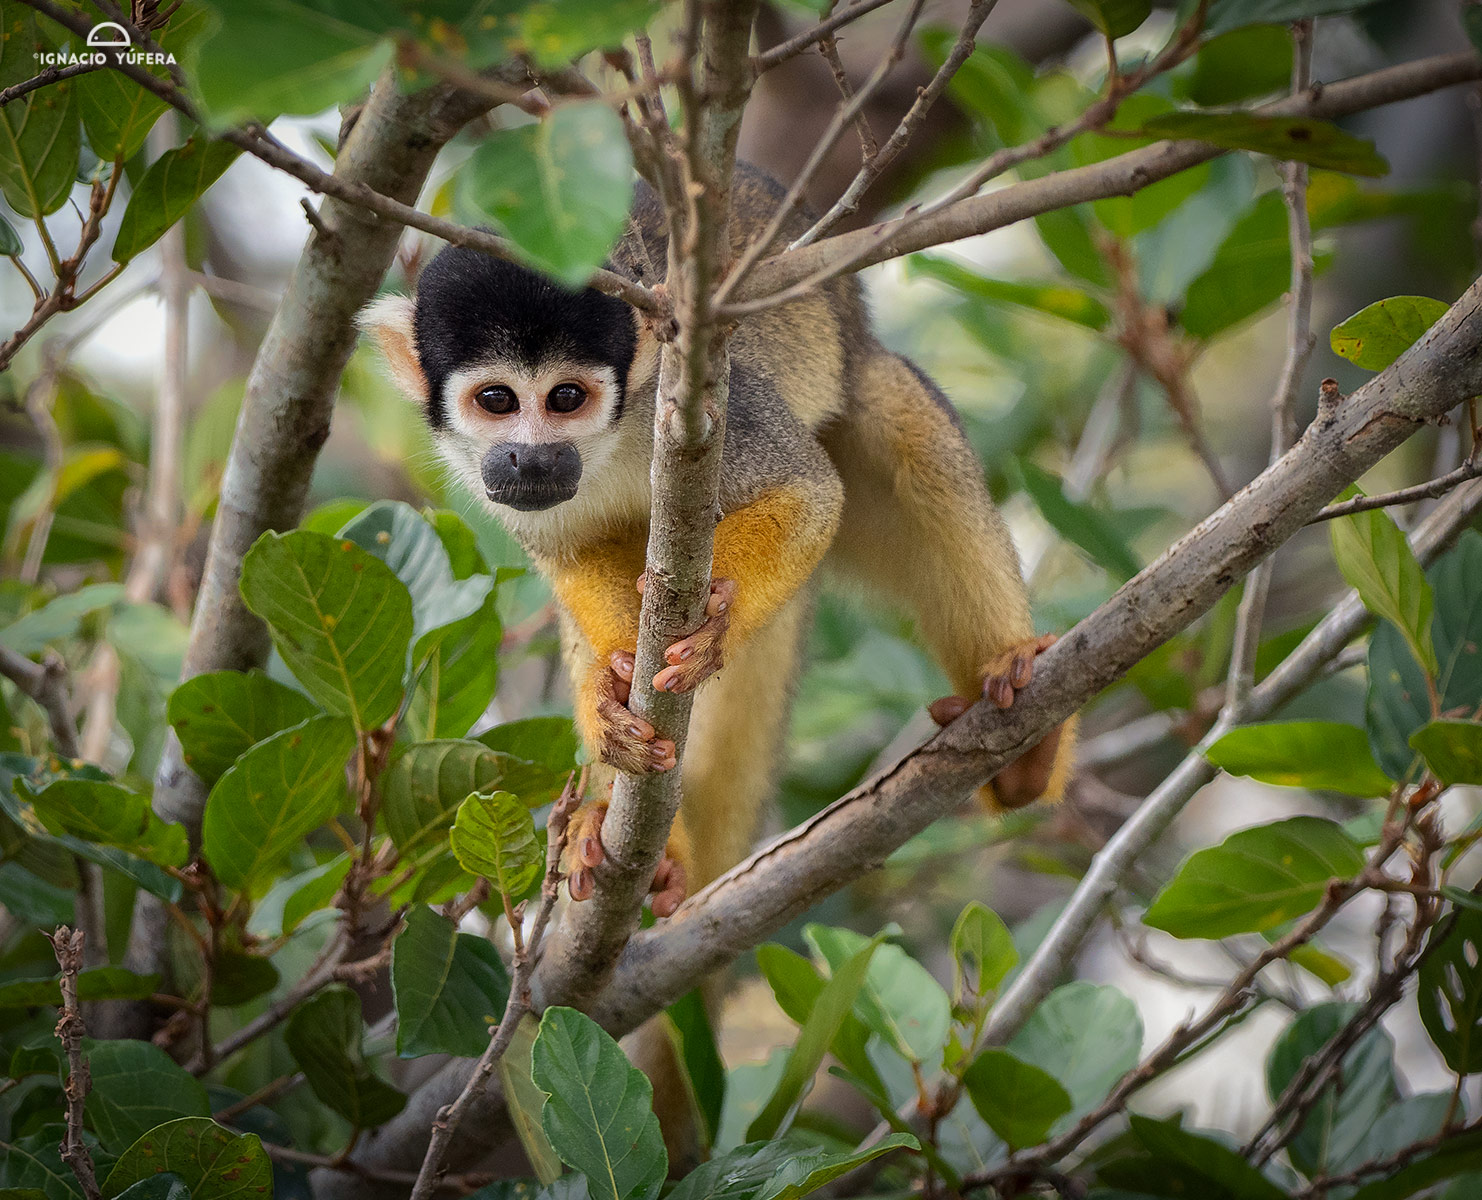 Black-headed Squirrel Monkey (Saimiri vanzolinii), Mamirauá reserve, Amazonas, Brazil